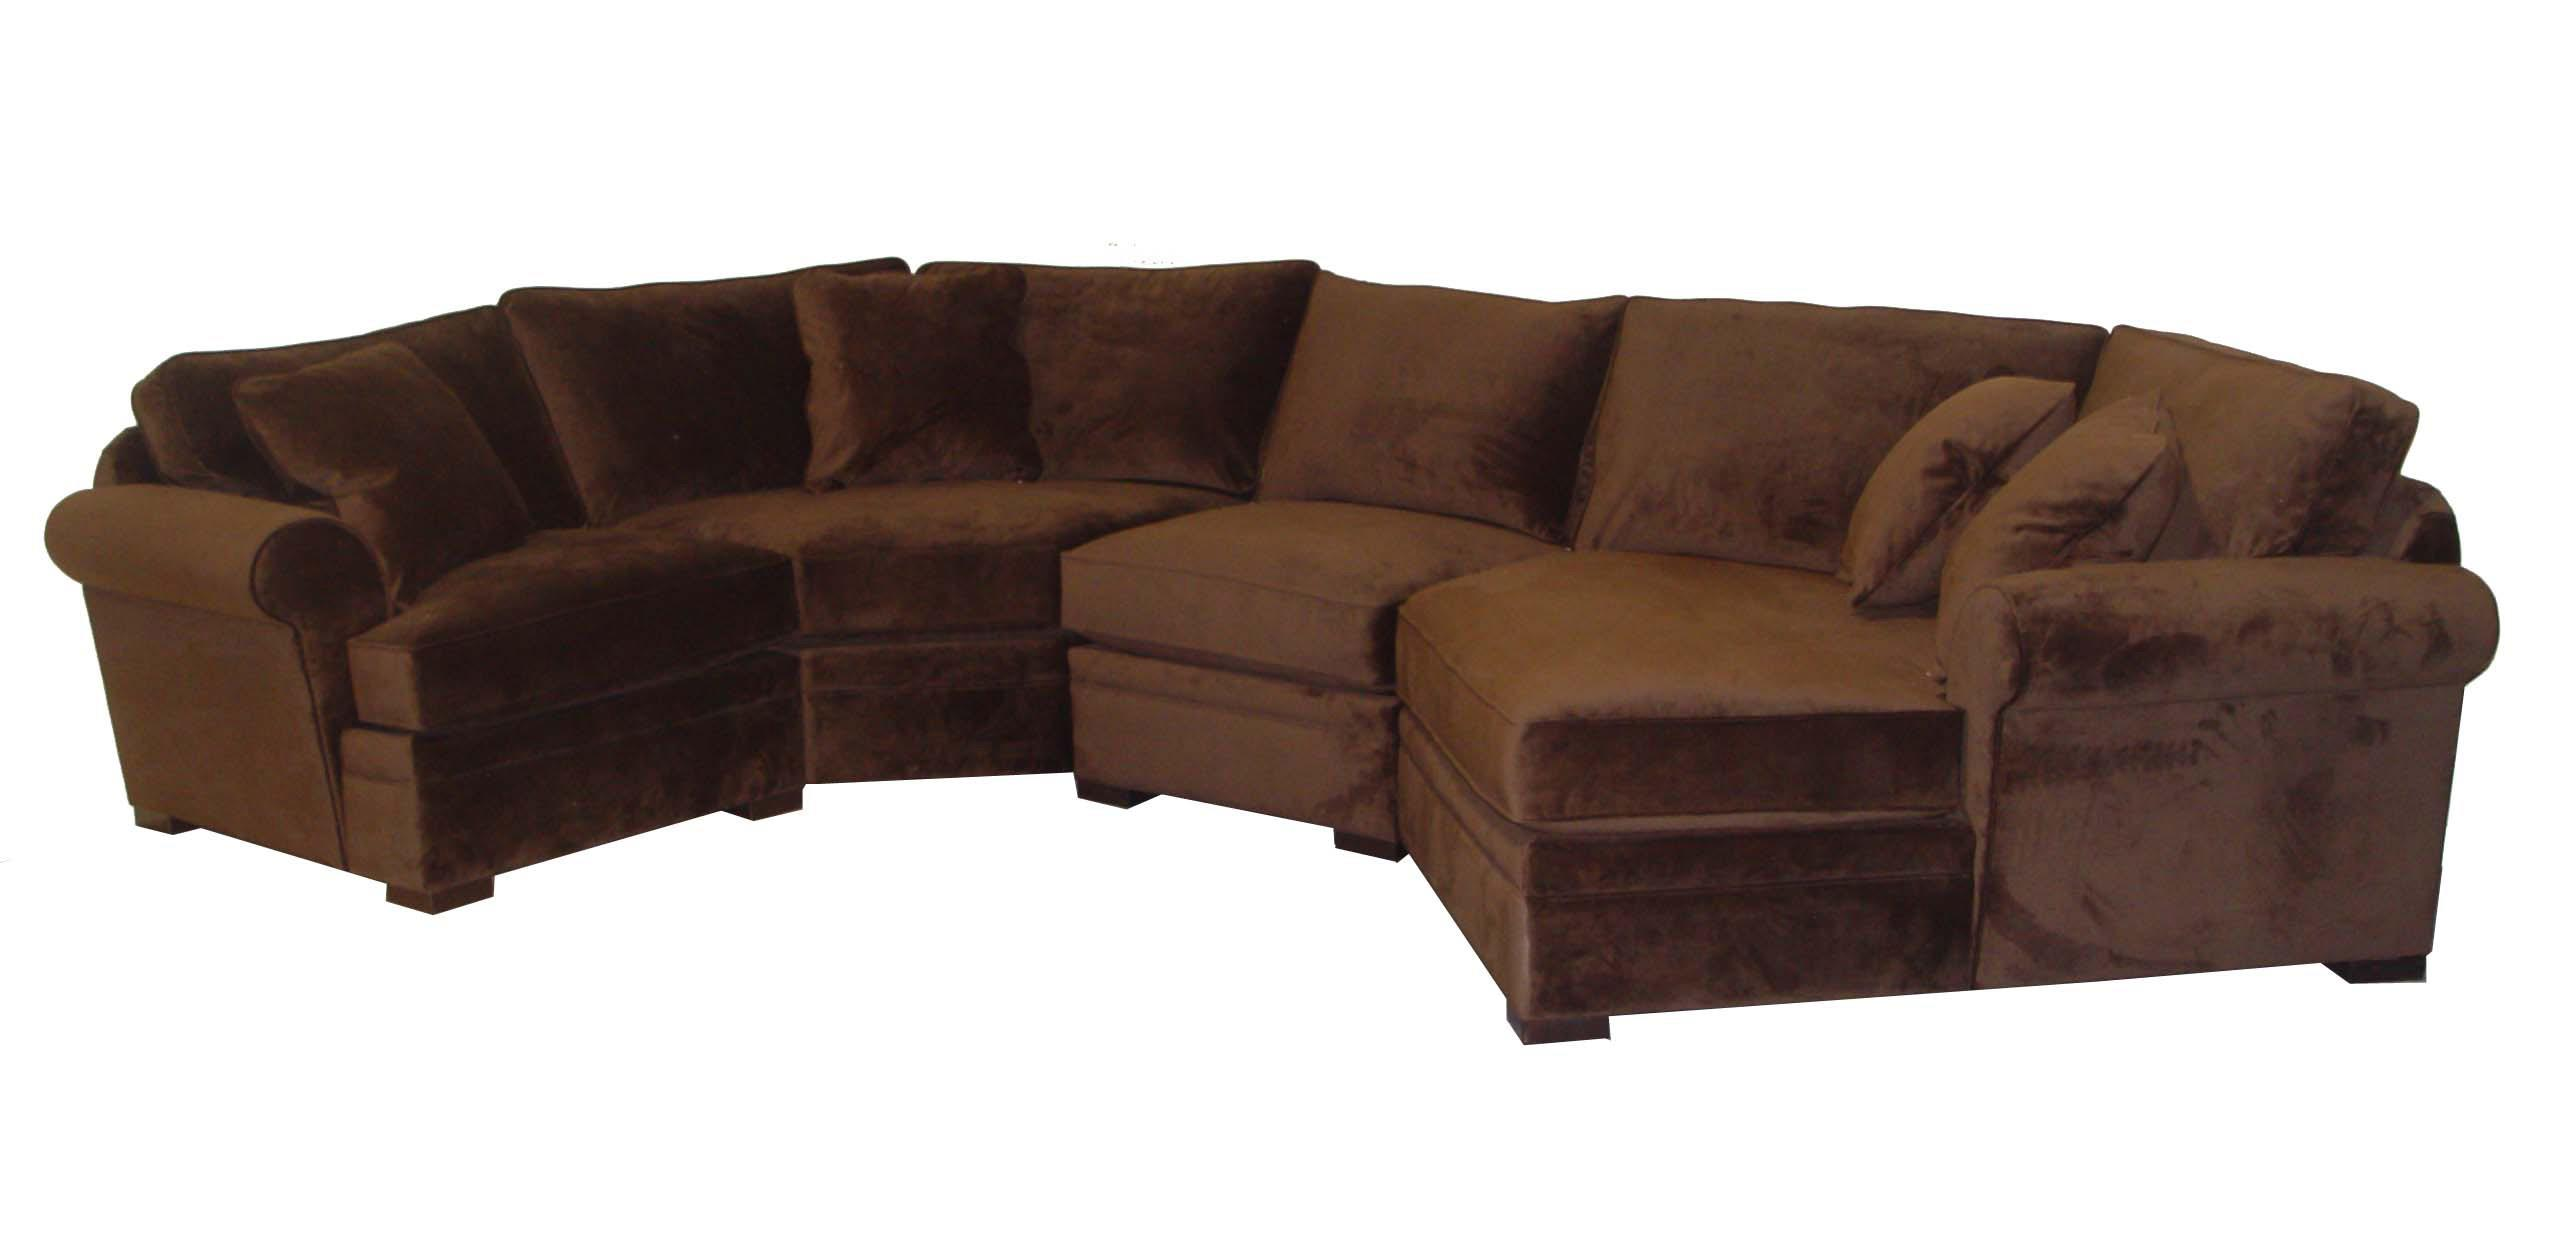 Jonathan Louis Hermes Four Piece Sectional Sofa With Raf